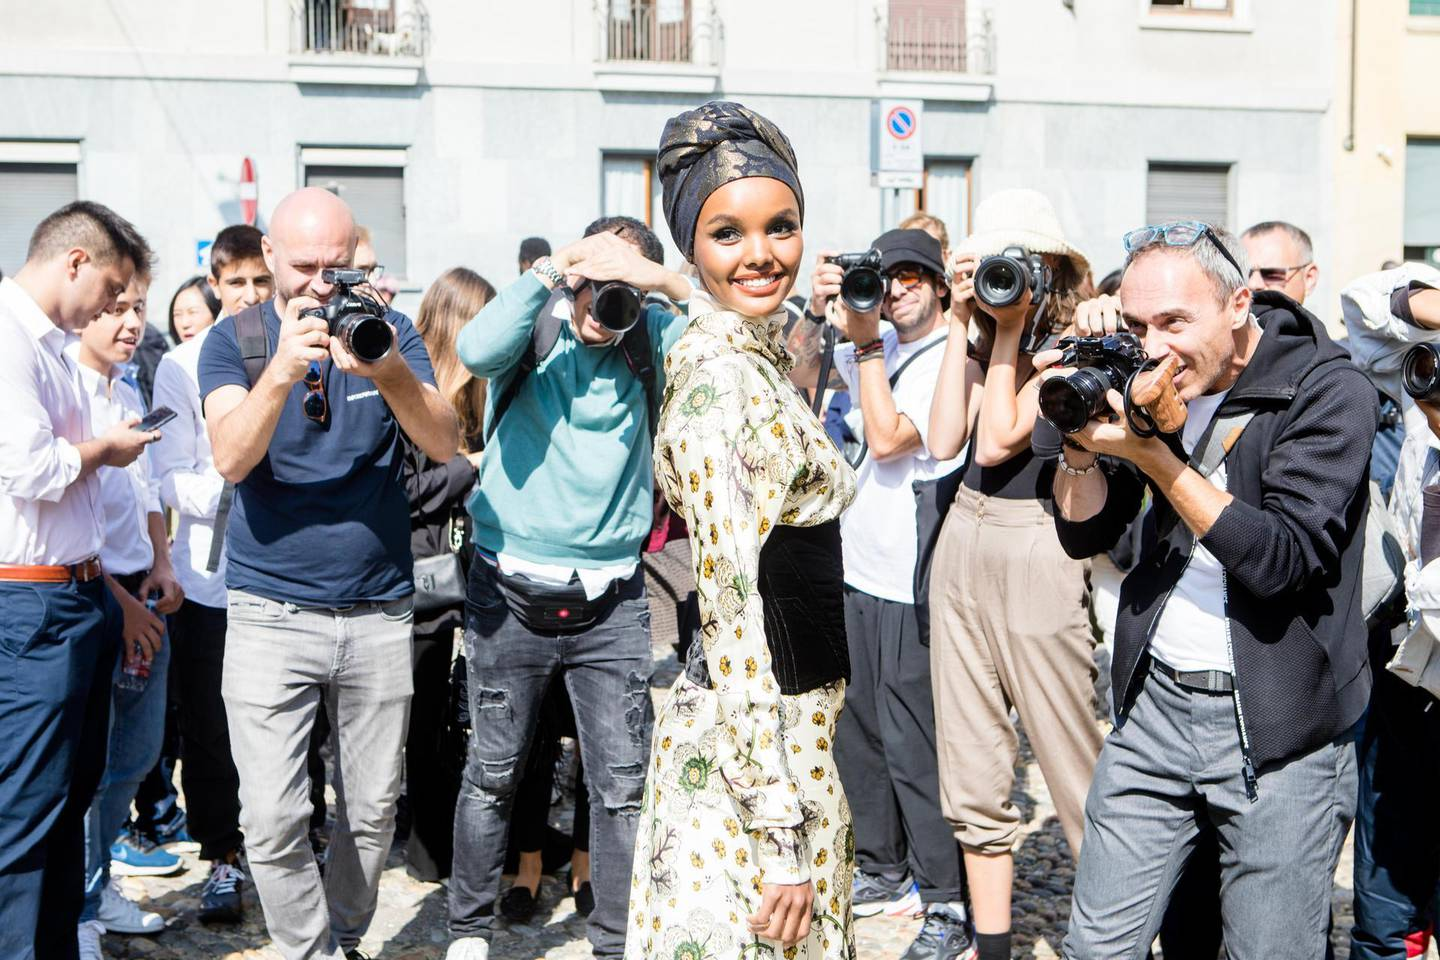 Halima Aden seen outside the Etro show during Milan Fashion Week Spring/Summer 2020 on September 20, 2019 in Milan, Italy. (Photo by Mairo Cinquetti/NurPhoto via Getty Images)